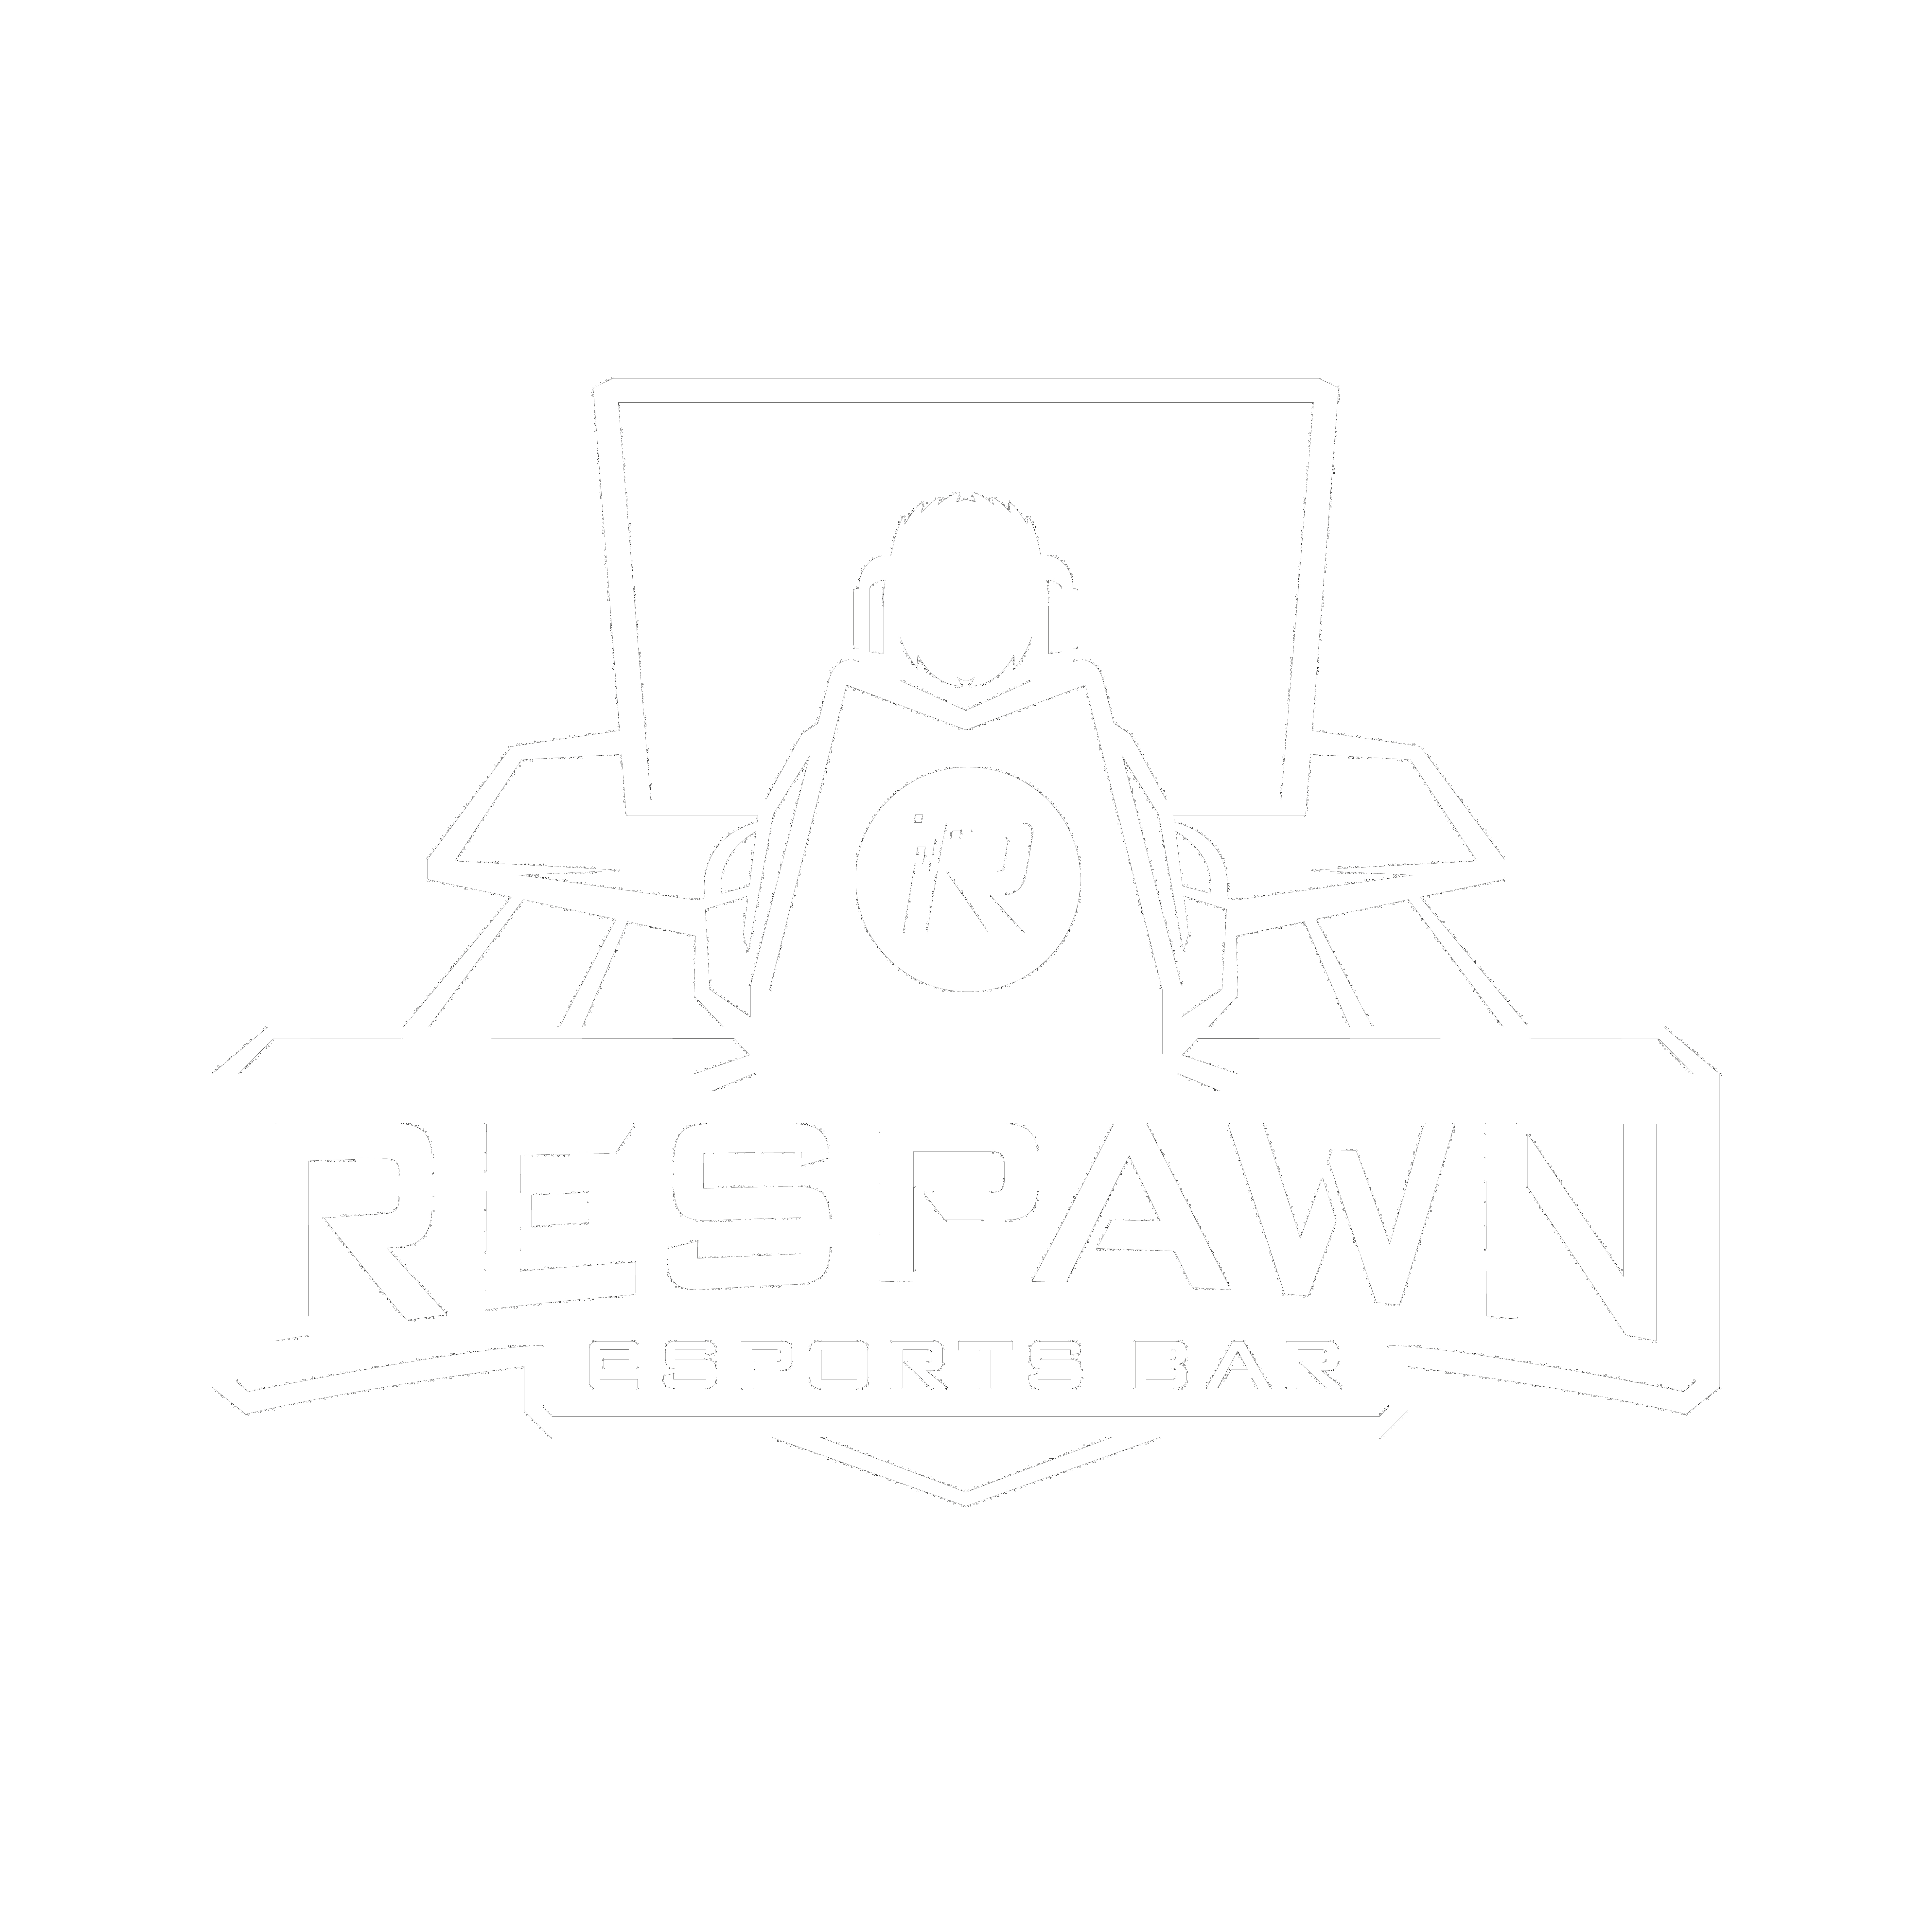 Respawn eSports Bar Logo